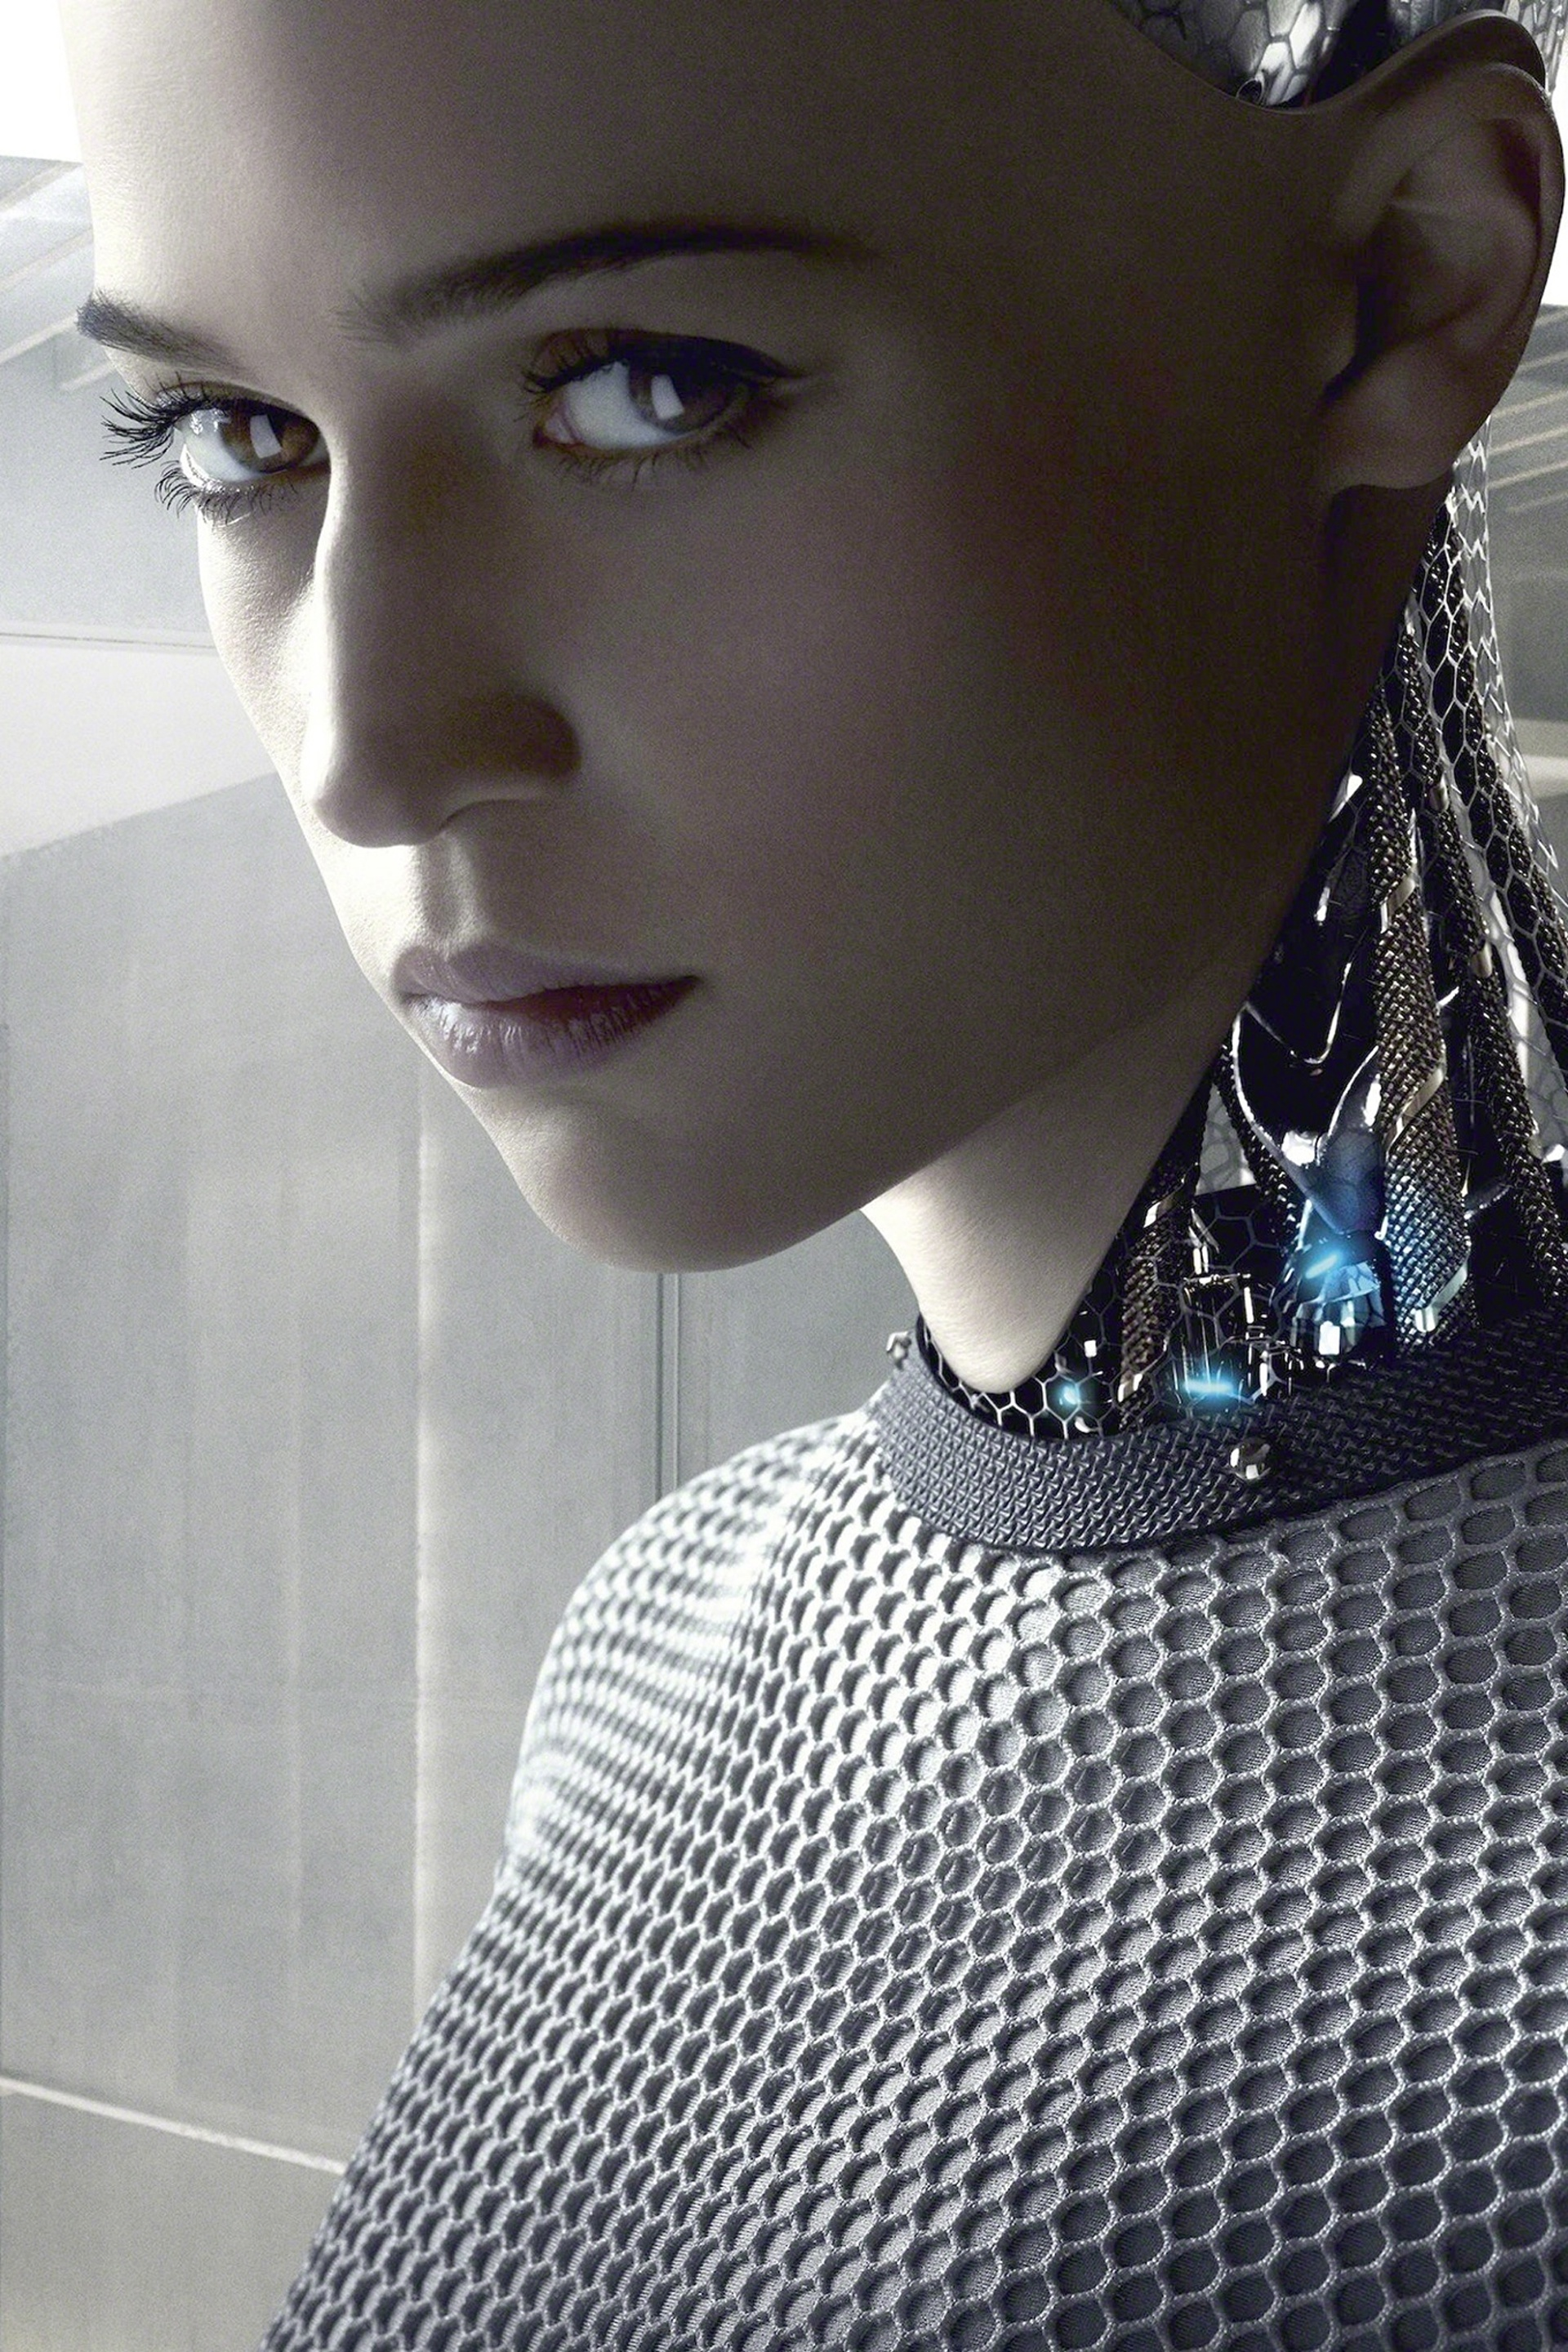 Ava from Ex Machina